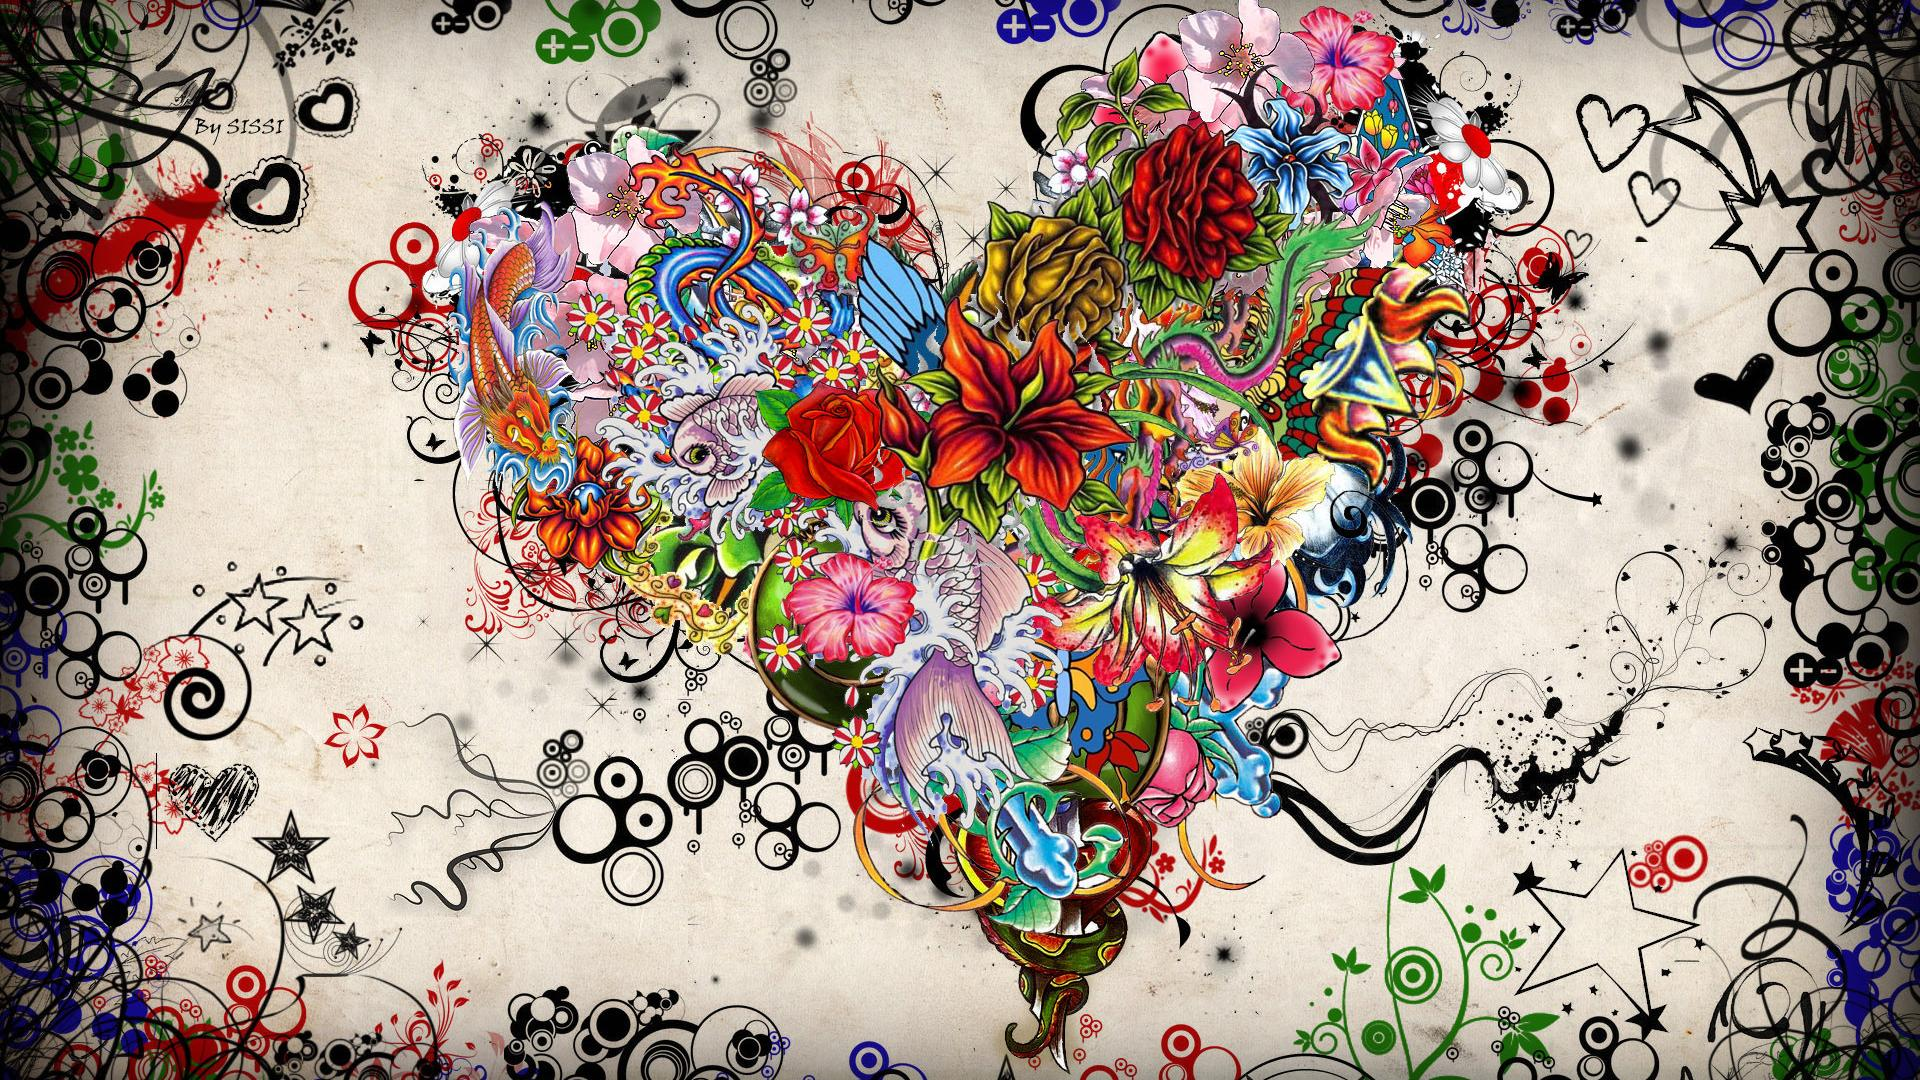 90 days to spiritual enlightenment a 90 day journey of - Love wallpaper hd ...